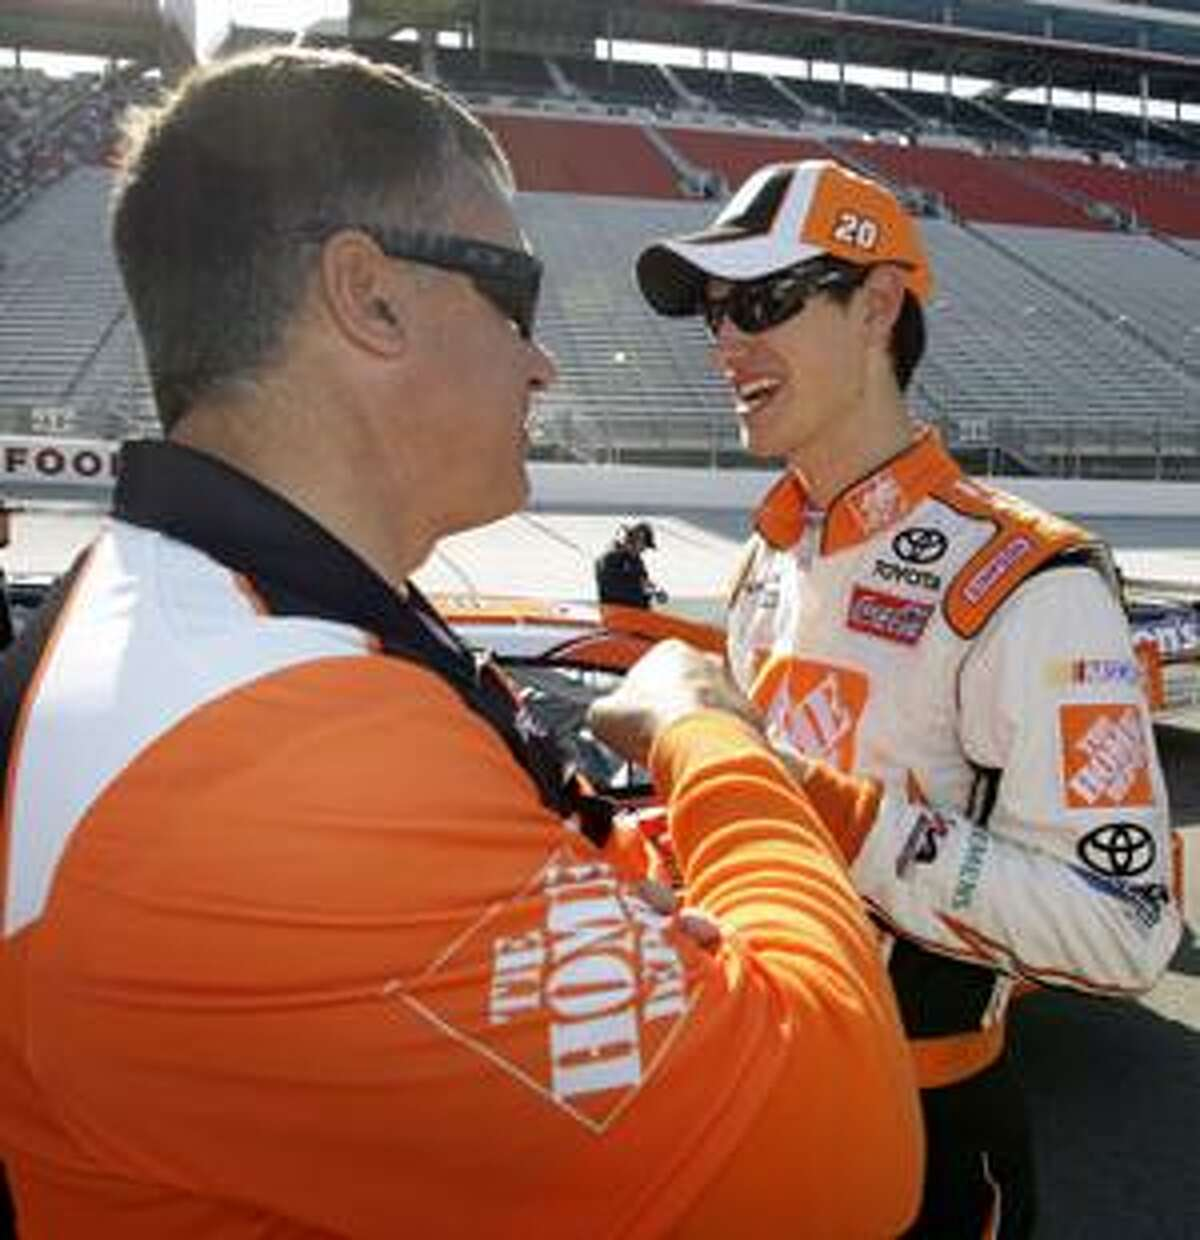 Joey Logano, right, is congratulated by a crew member after qualifying for the NASCAR Sprint Cup series Food City 500 auto race at Bristol Motor Speedway in Bristol, Tenn., Friday, March 19, 2010. Logano won the pole position for the race with a speed of 124.630 mph. (AP Photo/Chuck Burton)